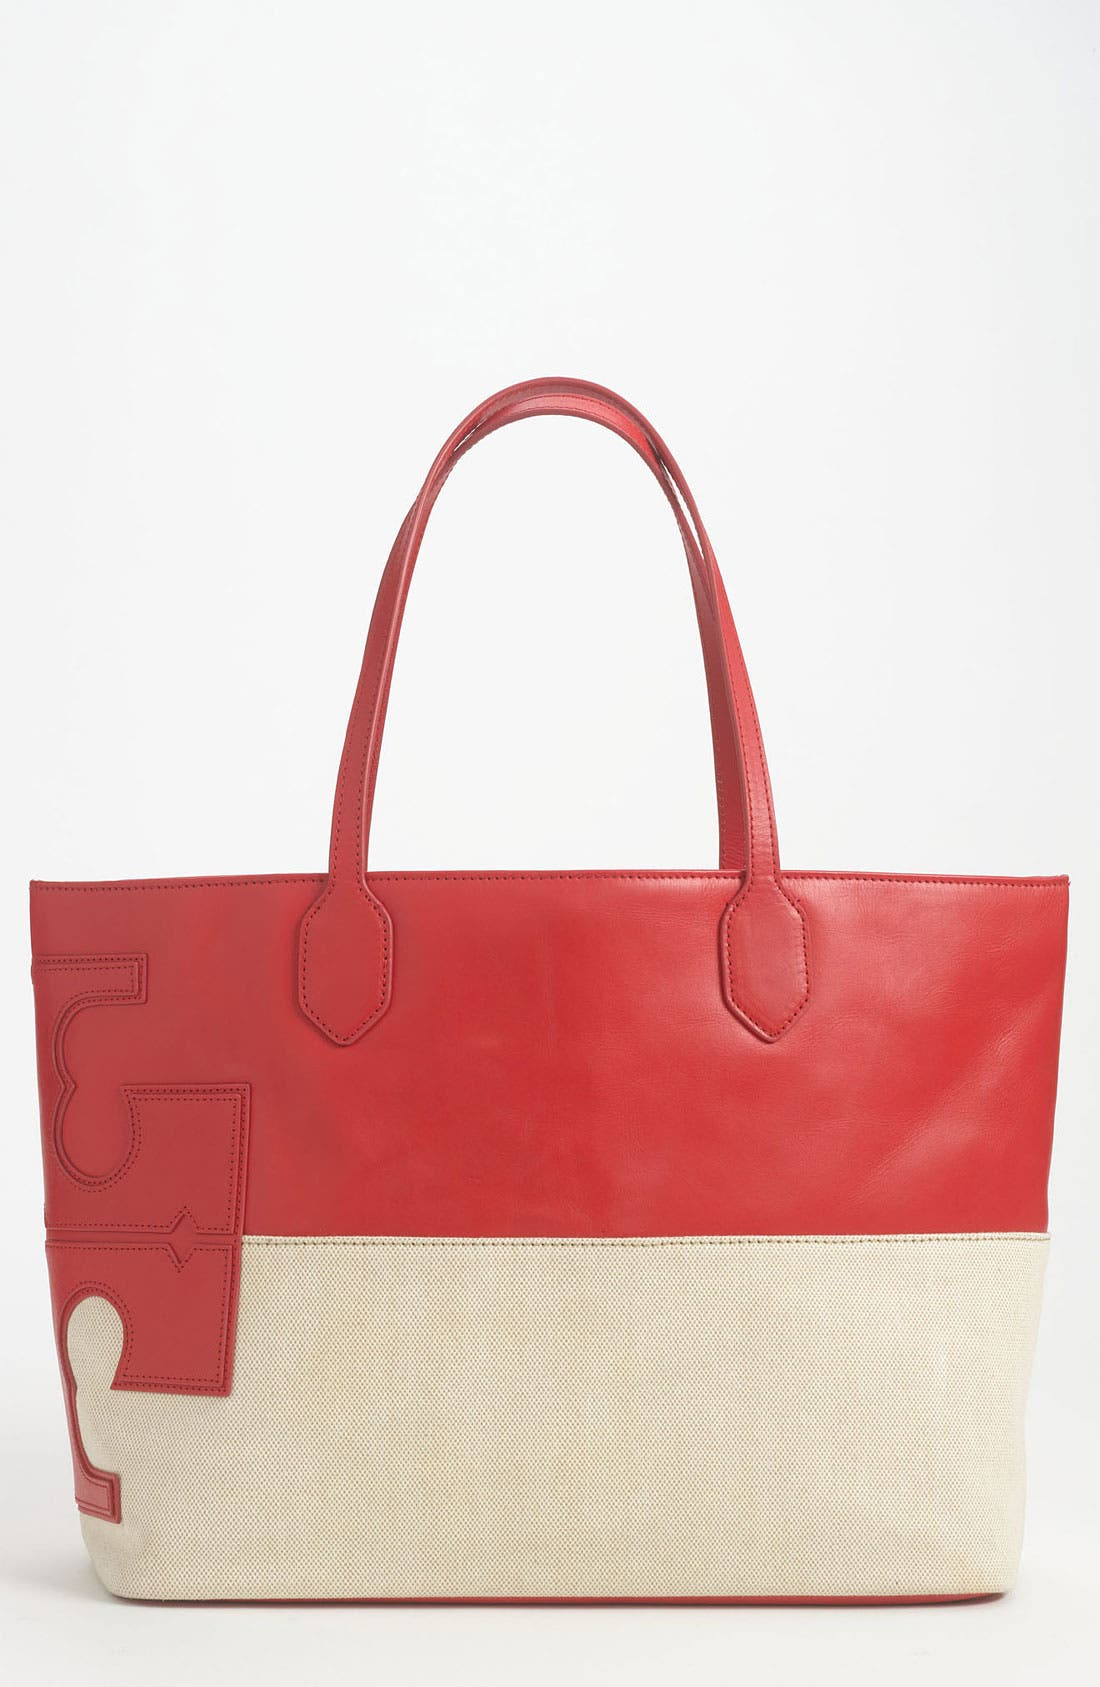 Main Image - Tory Burch 'Stacked T' Tote